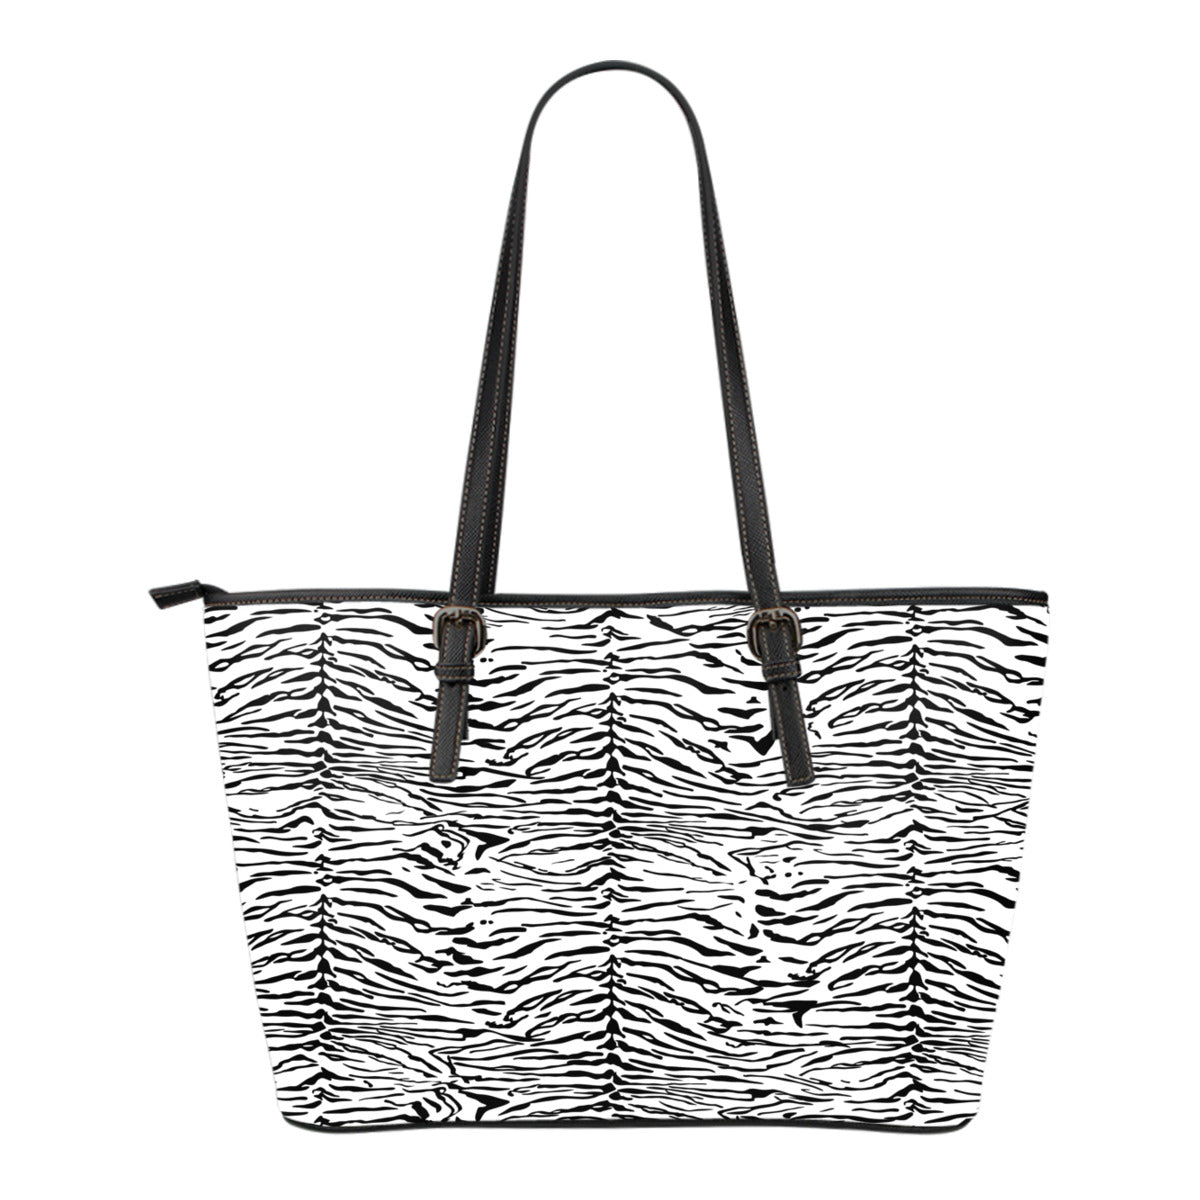 Animal Print BW Themed Design C3 Women Small Leather Tote Bag